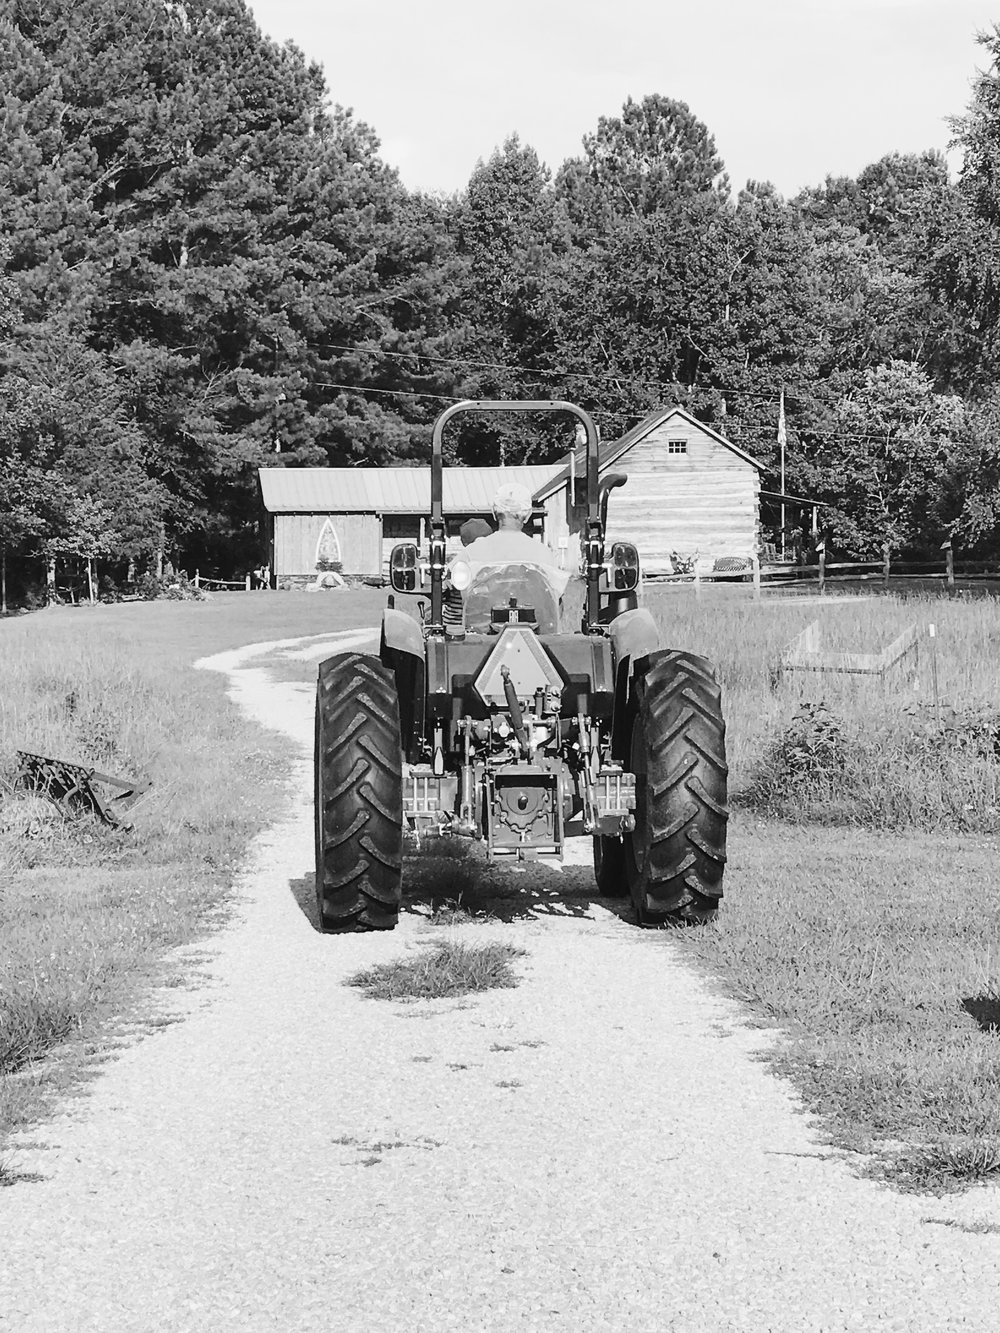 Within seconds of us pulling into Uncle Bill and Aunt Mildred's driveway, Bo was begging to ride Uncle Bill's new tractor. His little 3-year-old self was pleased as punch when He finally got what he'd been talking about since the last time we were all in Alabama back in October.